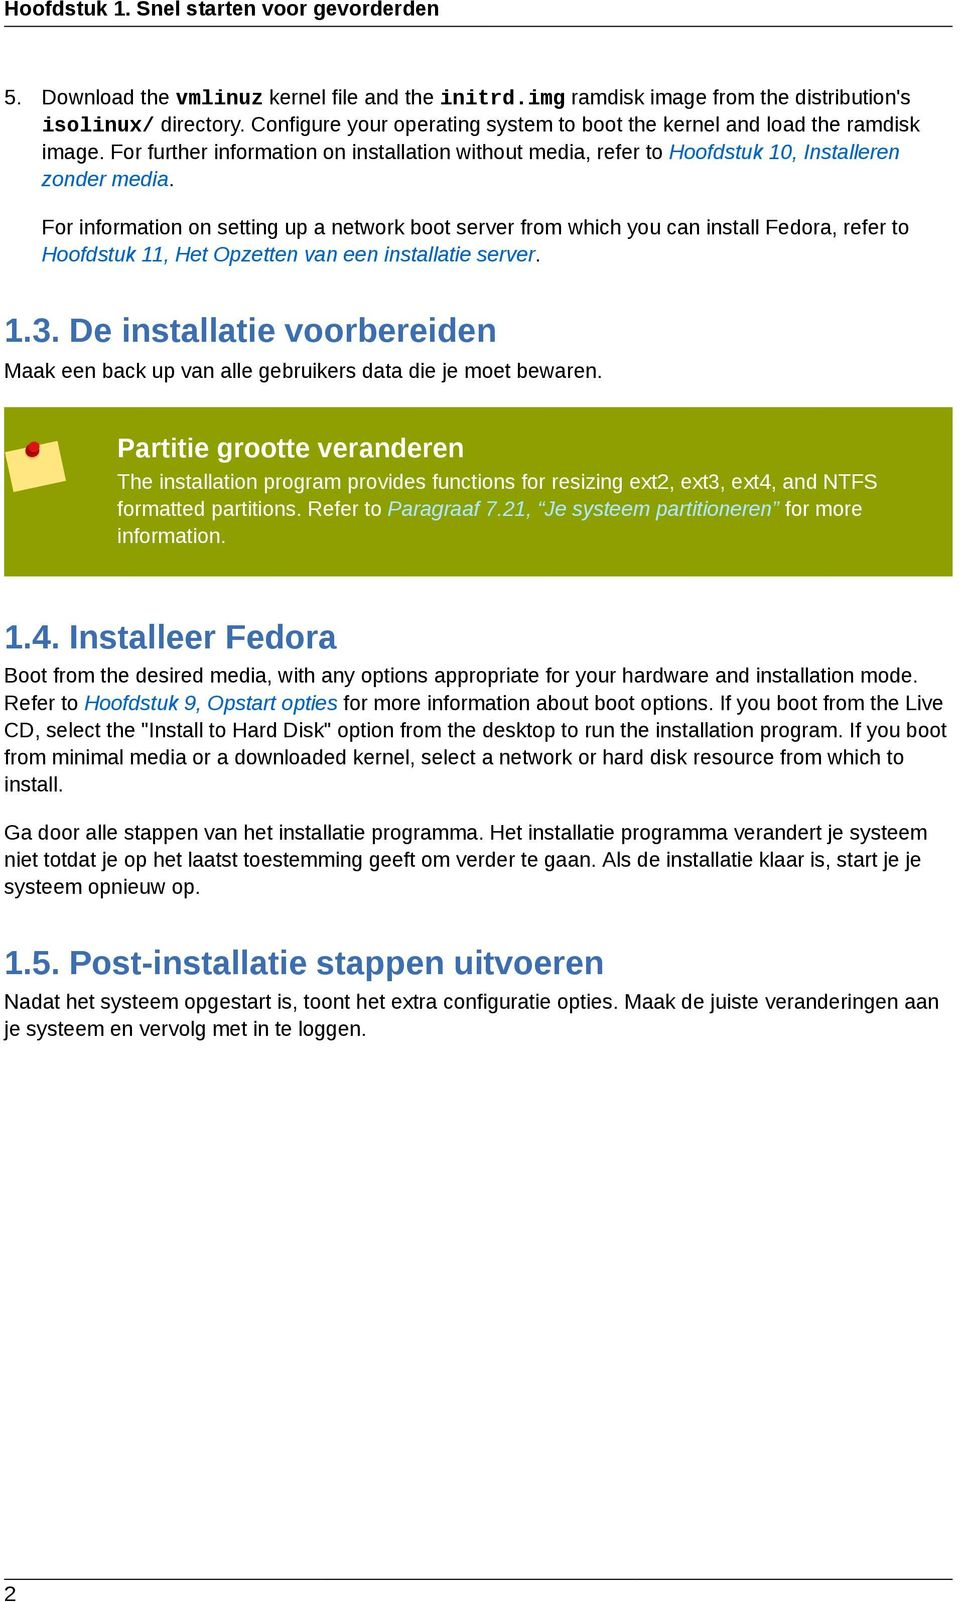 For information on setting up a network boot server from which you can install Fedora, refer to Hoofdstuk 11, Het Opzetten van een installatie server. 1.3.